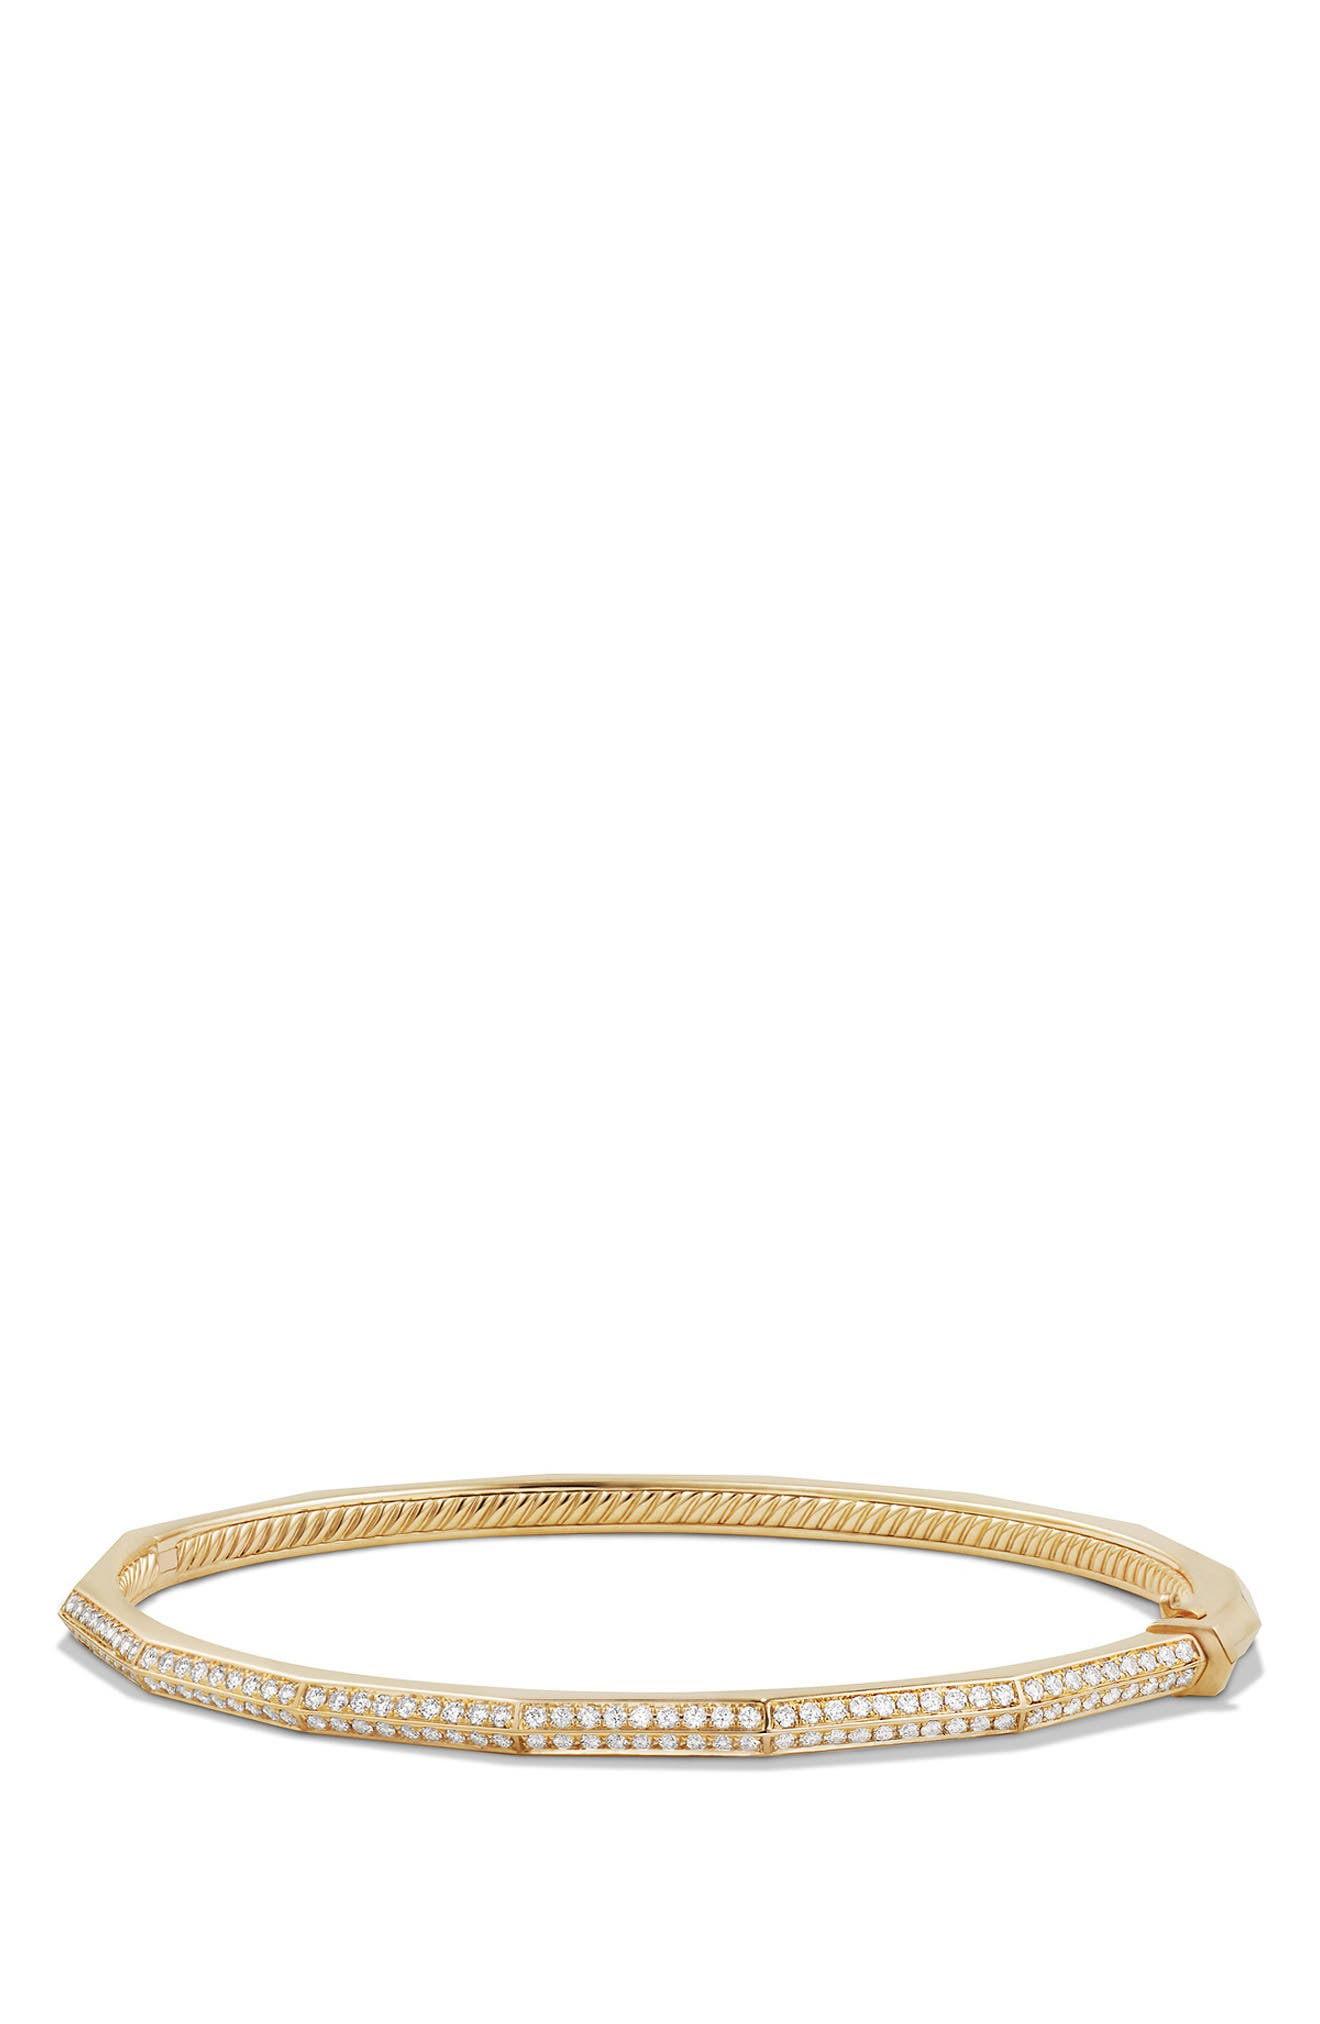 Stax Single-Row Faceted 18K Gold Bracelet with Diamonds, 3mm,                         Main,                         color, YELLOW GOLD